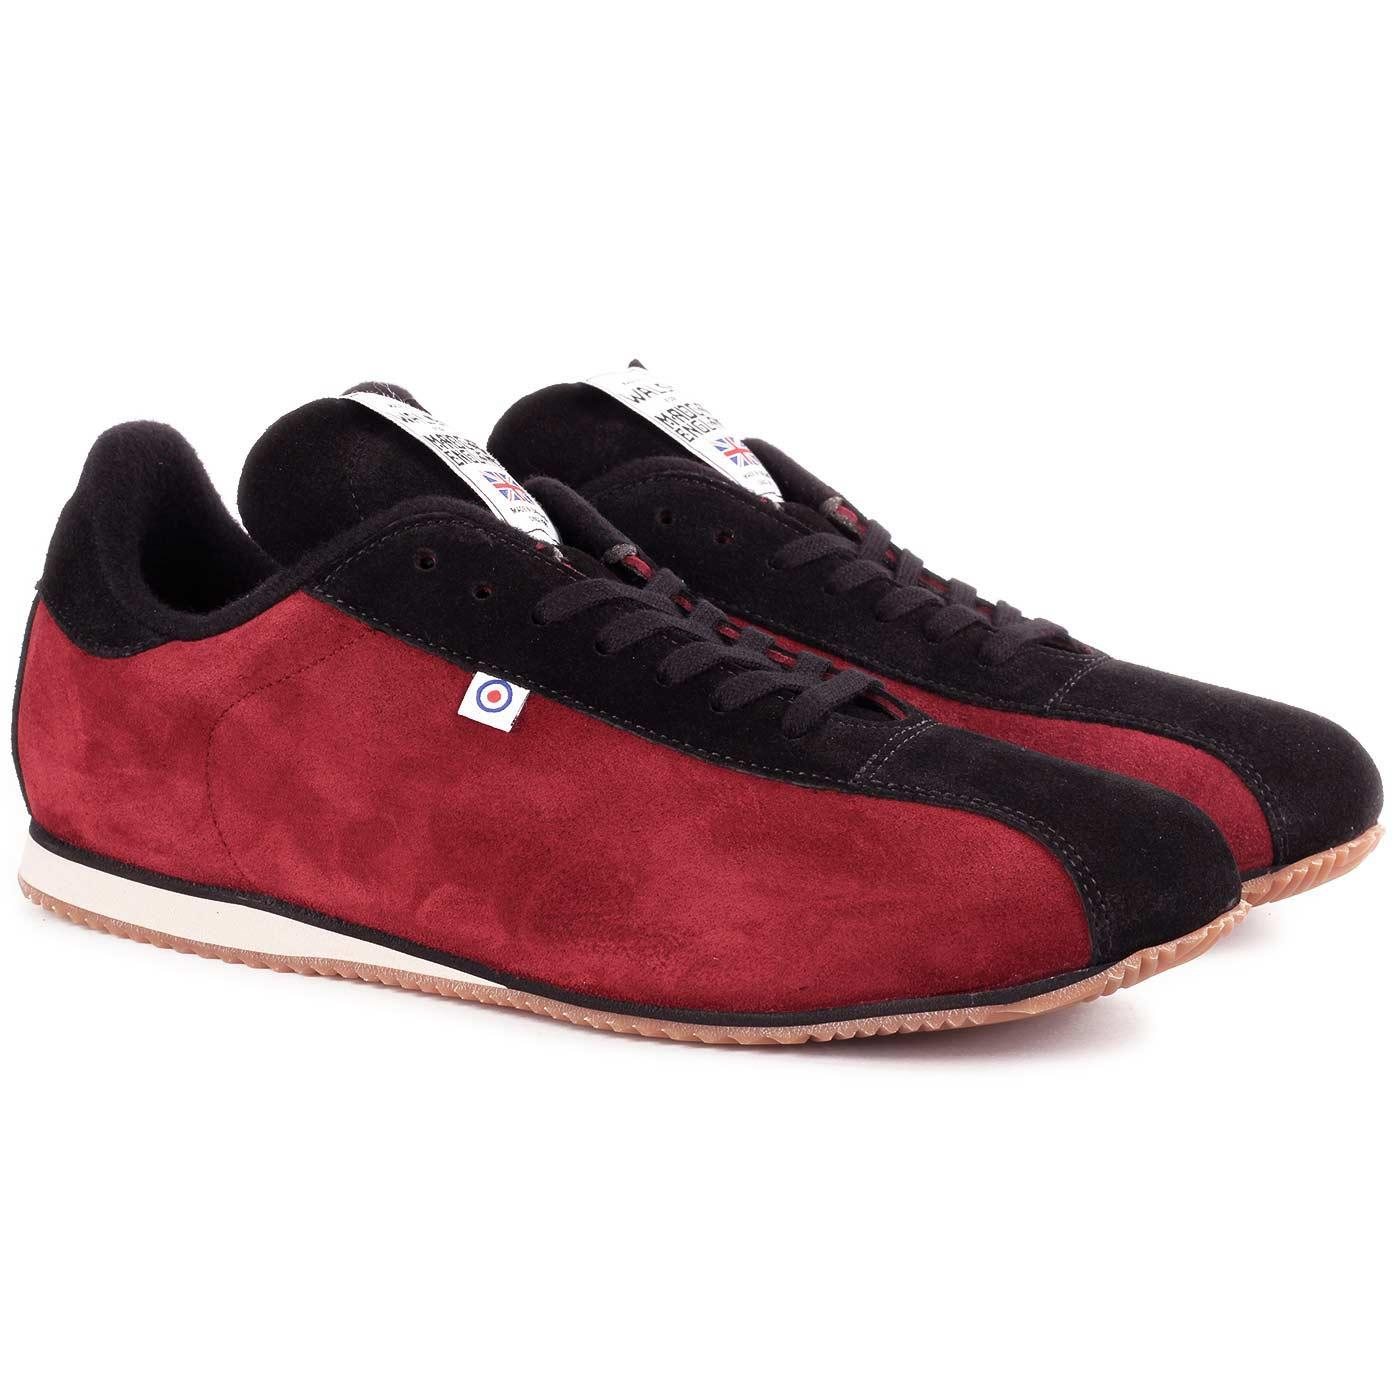 Torch WALSH x MADCAP ENGLAND Bowling Trainers